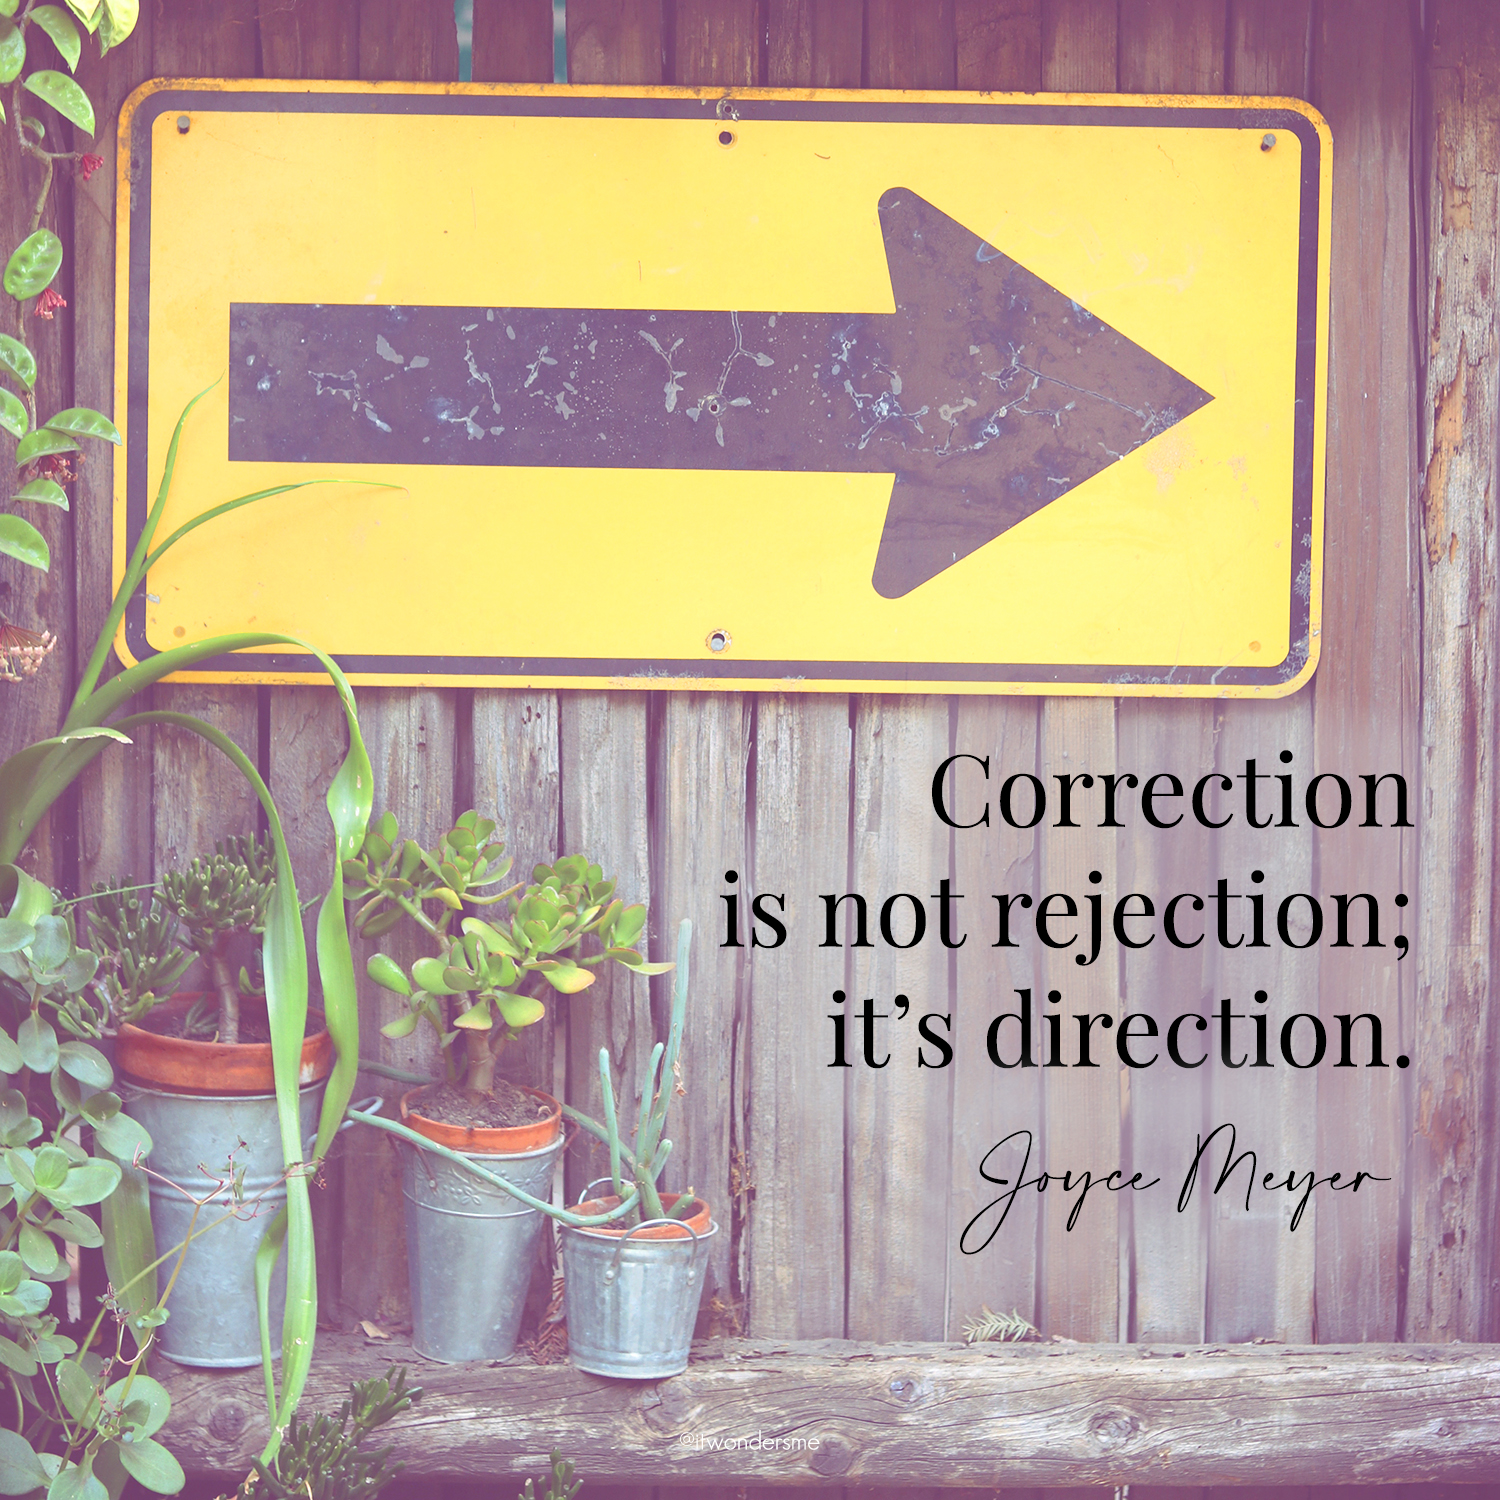 Correction is not rejection